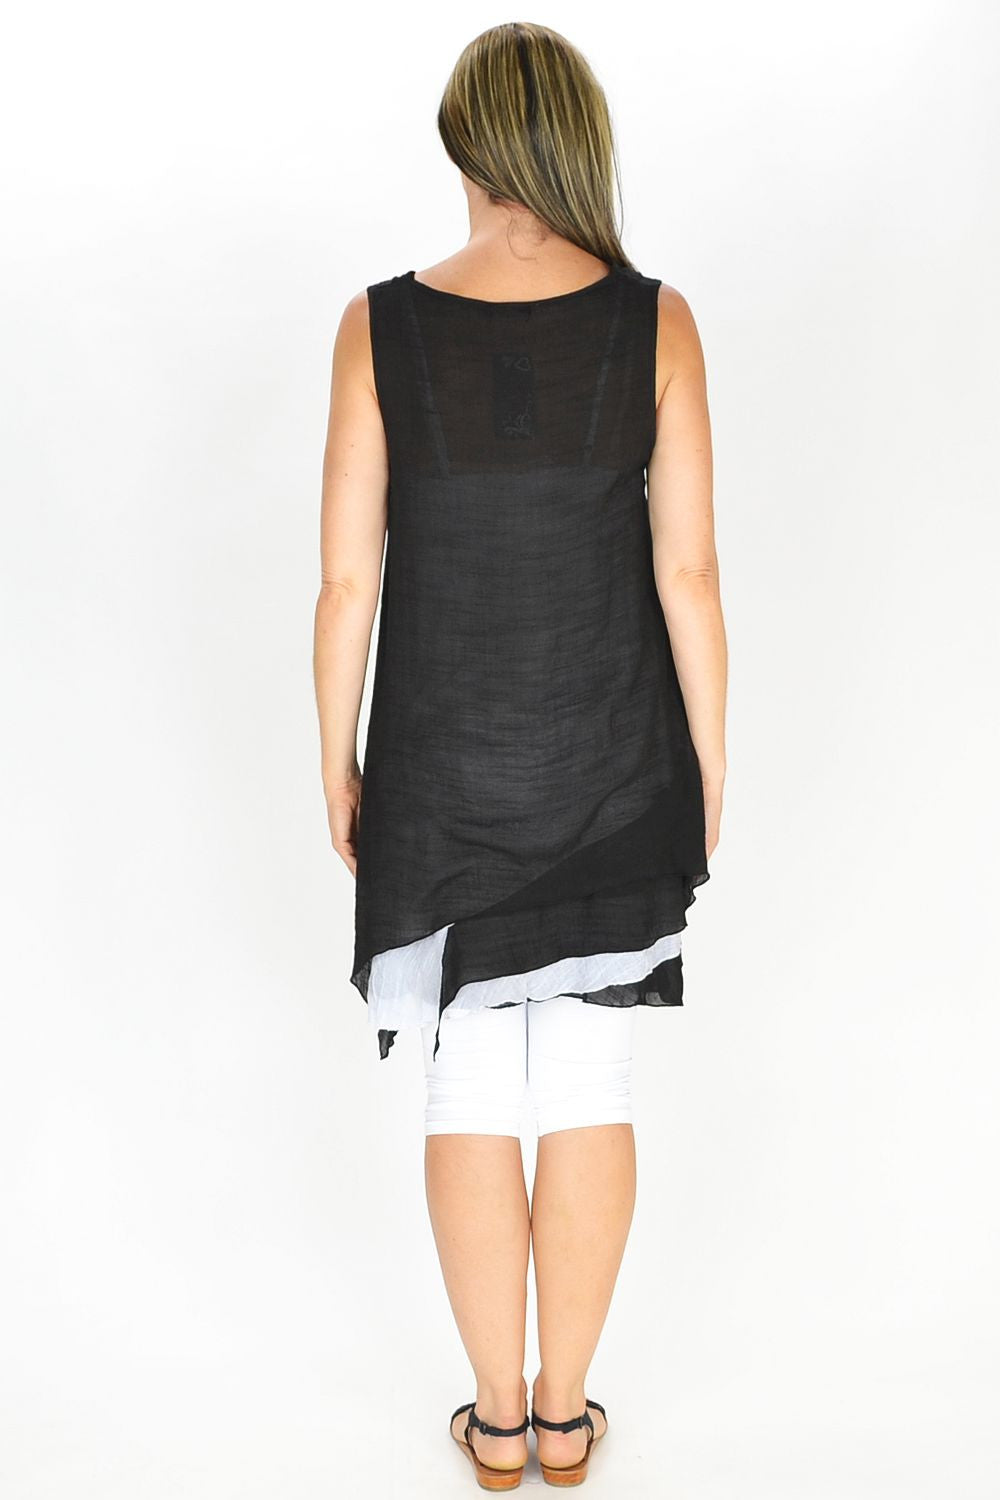 Black 2 in 1 Tunic | I Love Tunics | Tunic Tops | Tunic | Tunic Dresses  | womens clothing online